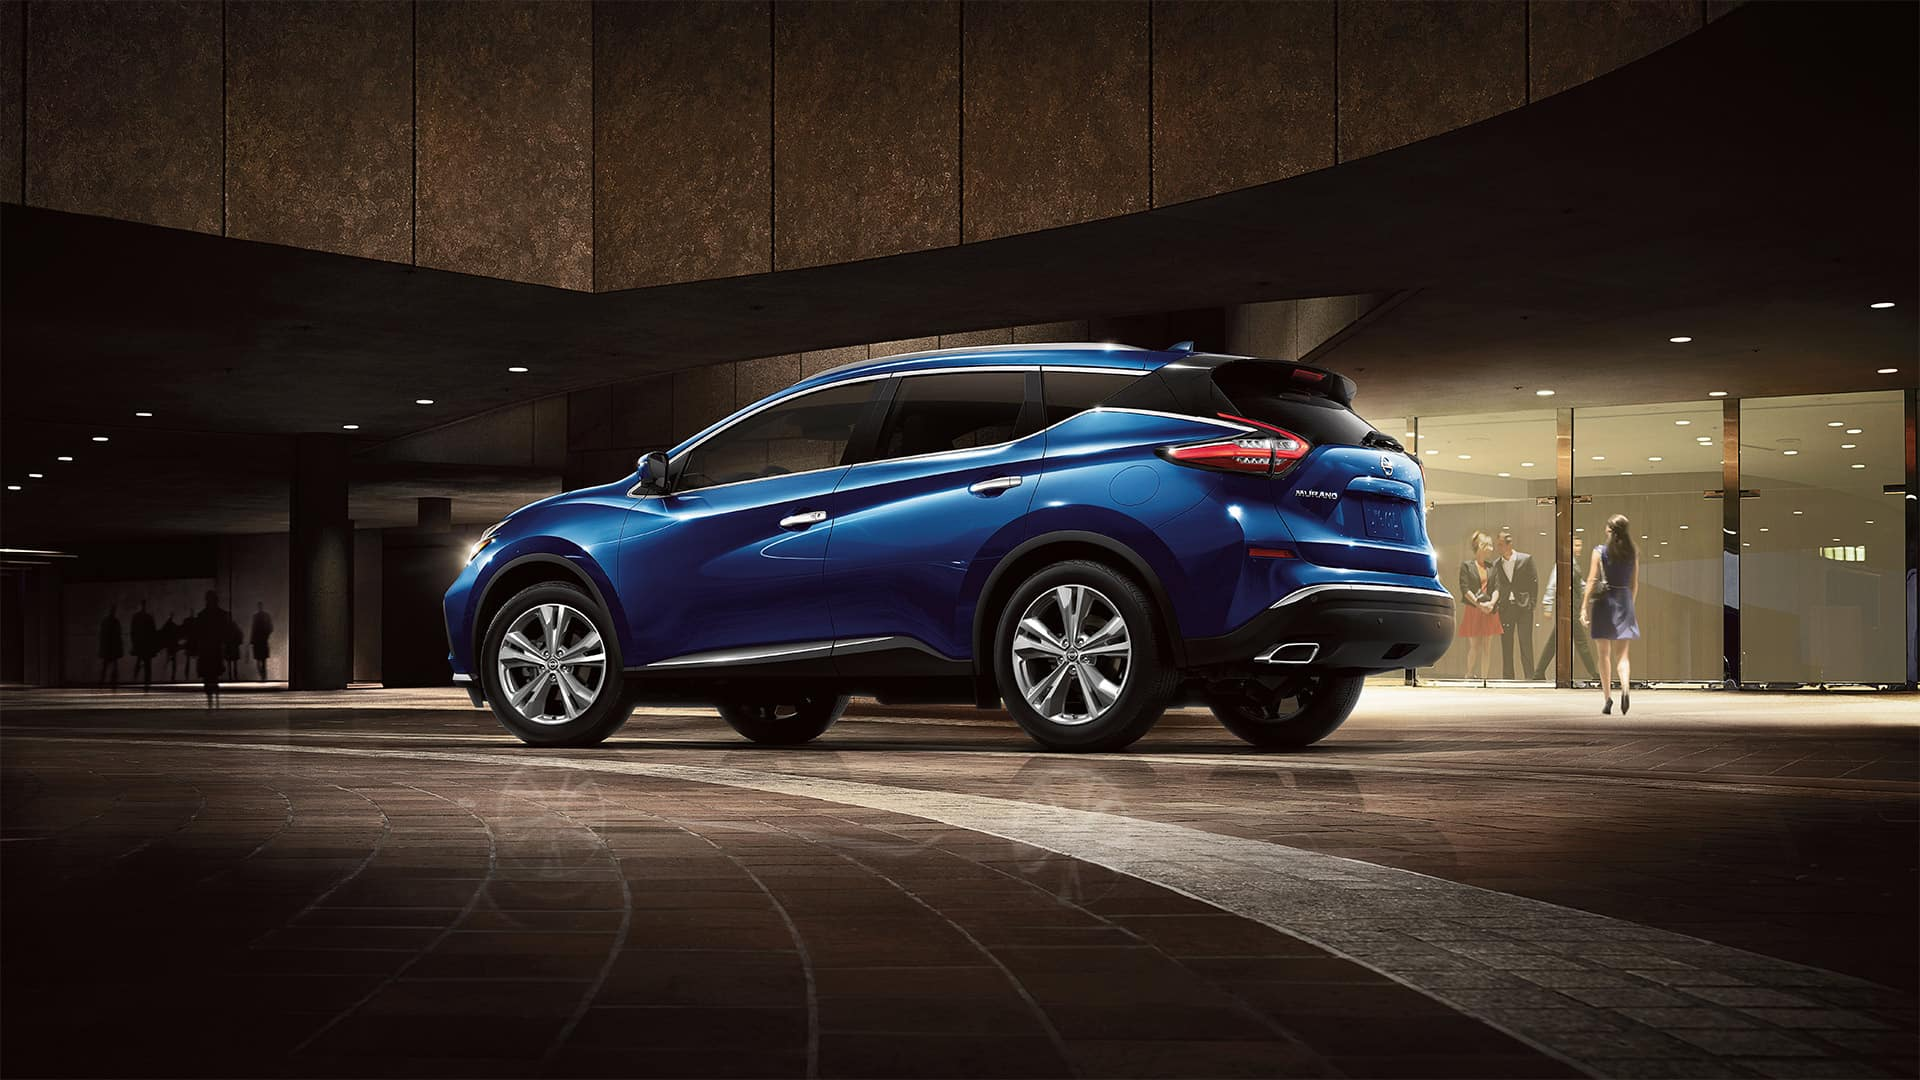 Boch Nissan South is a Family Owned Dealership near Norton, MA | 2020 Nissan Murano driving im tunnel